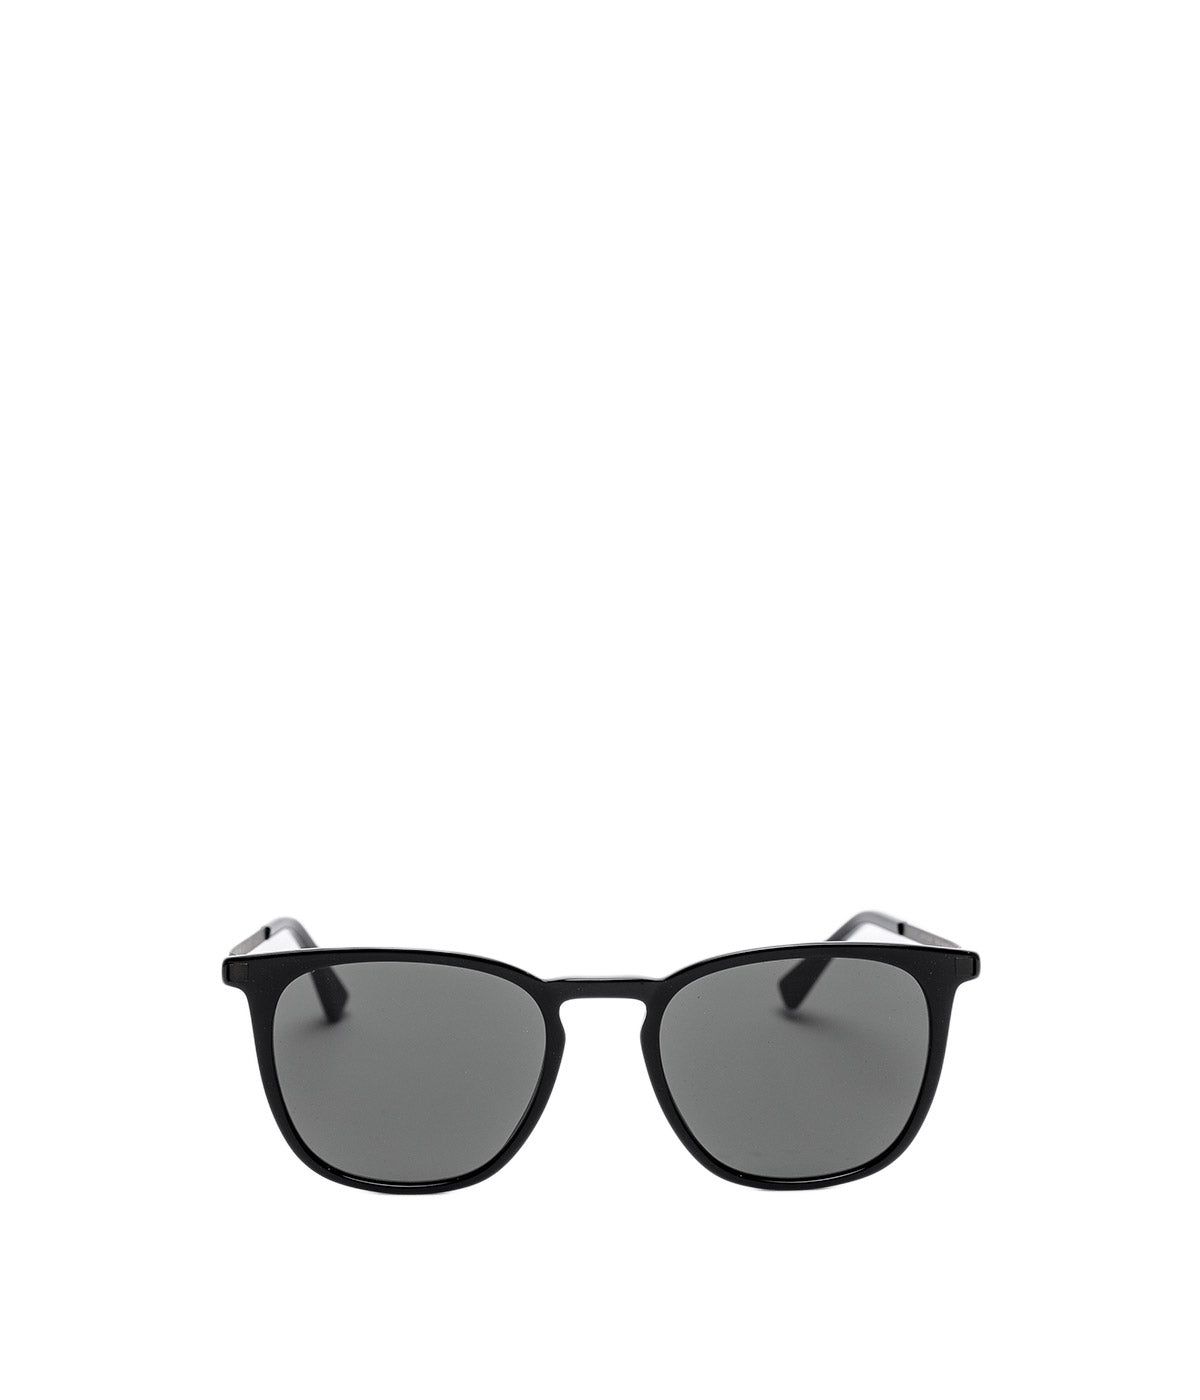 Black Lite Sun Square Sunglasses